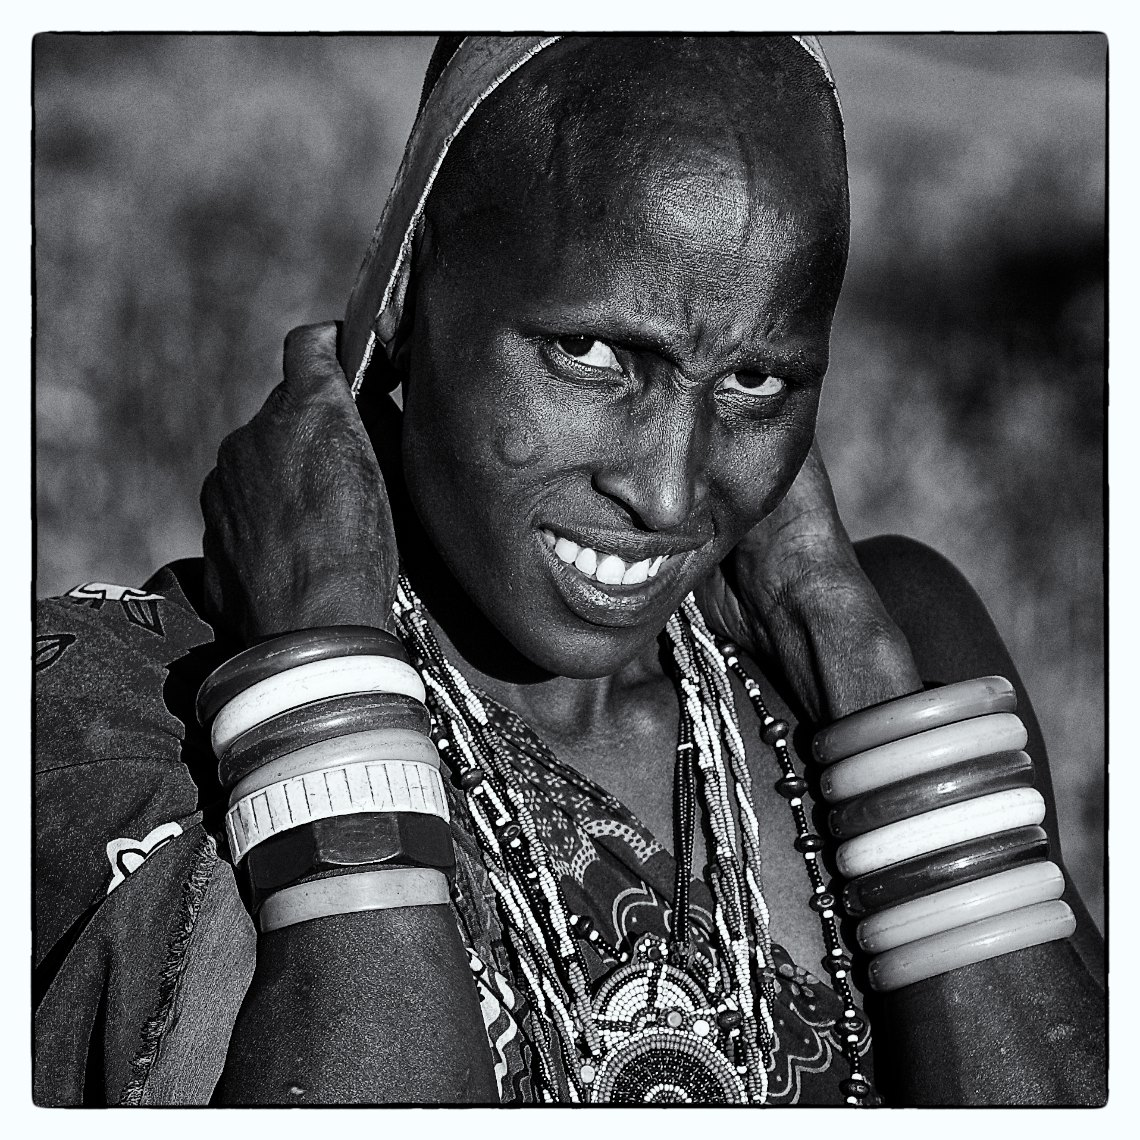 Kenya Amboseli Massai portrait woman carrying water